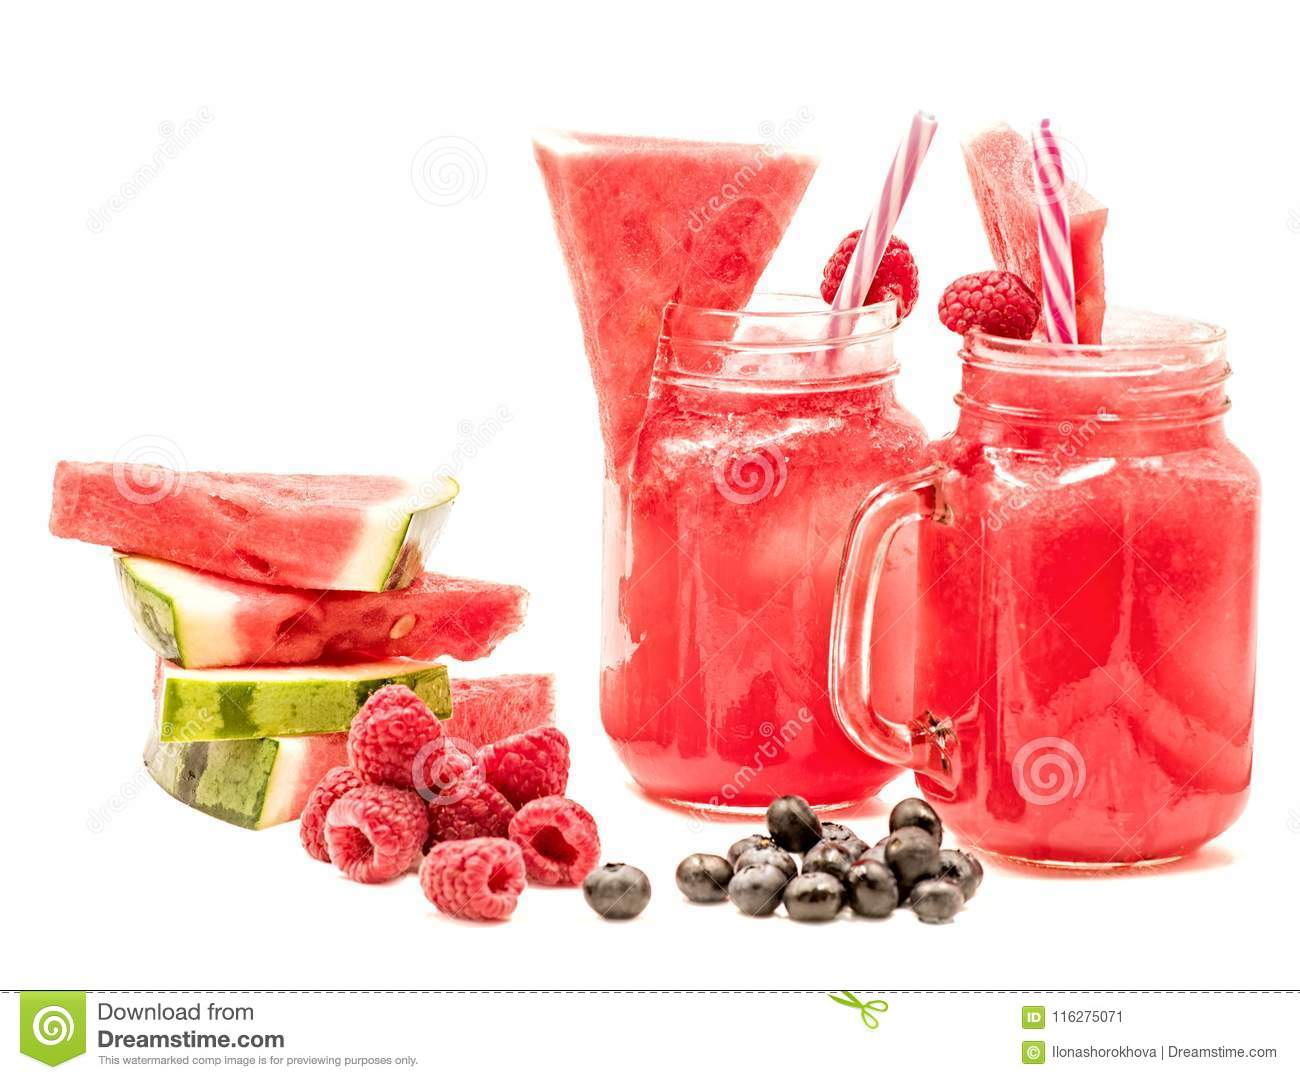 Watermelon smoothie in a mason jar decorated with a slice of watermelon, raspberries, blueberries and ice cubes isolated on white